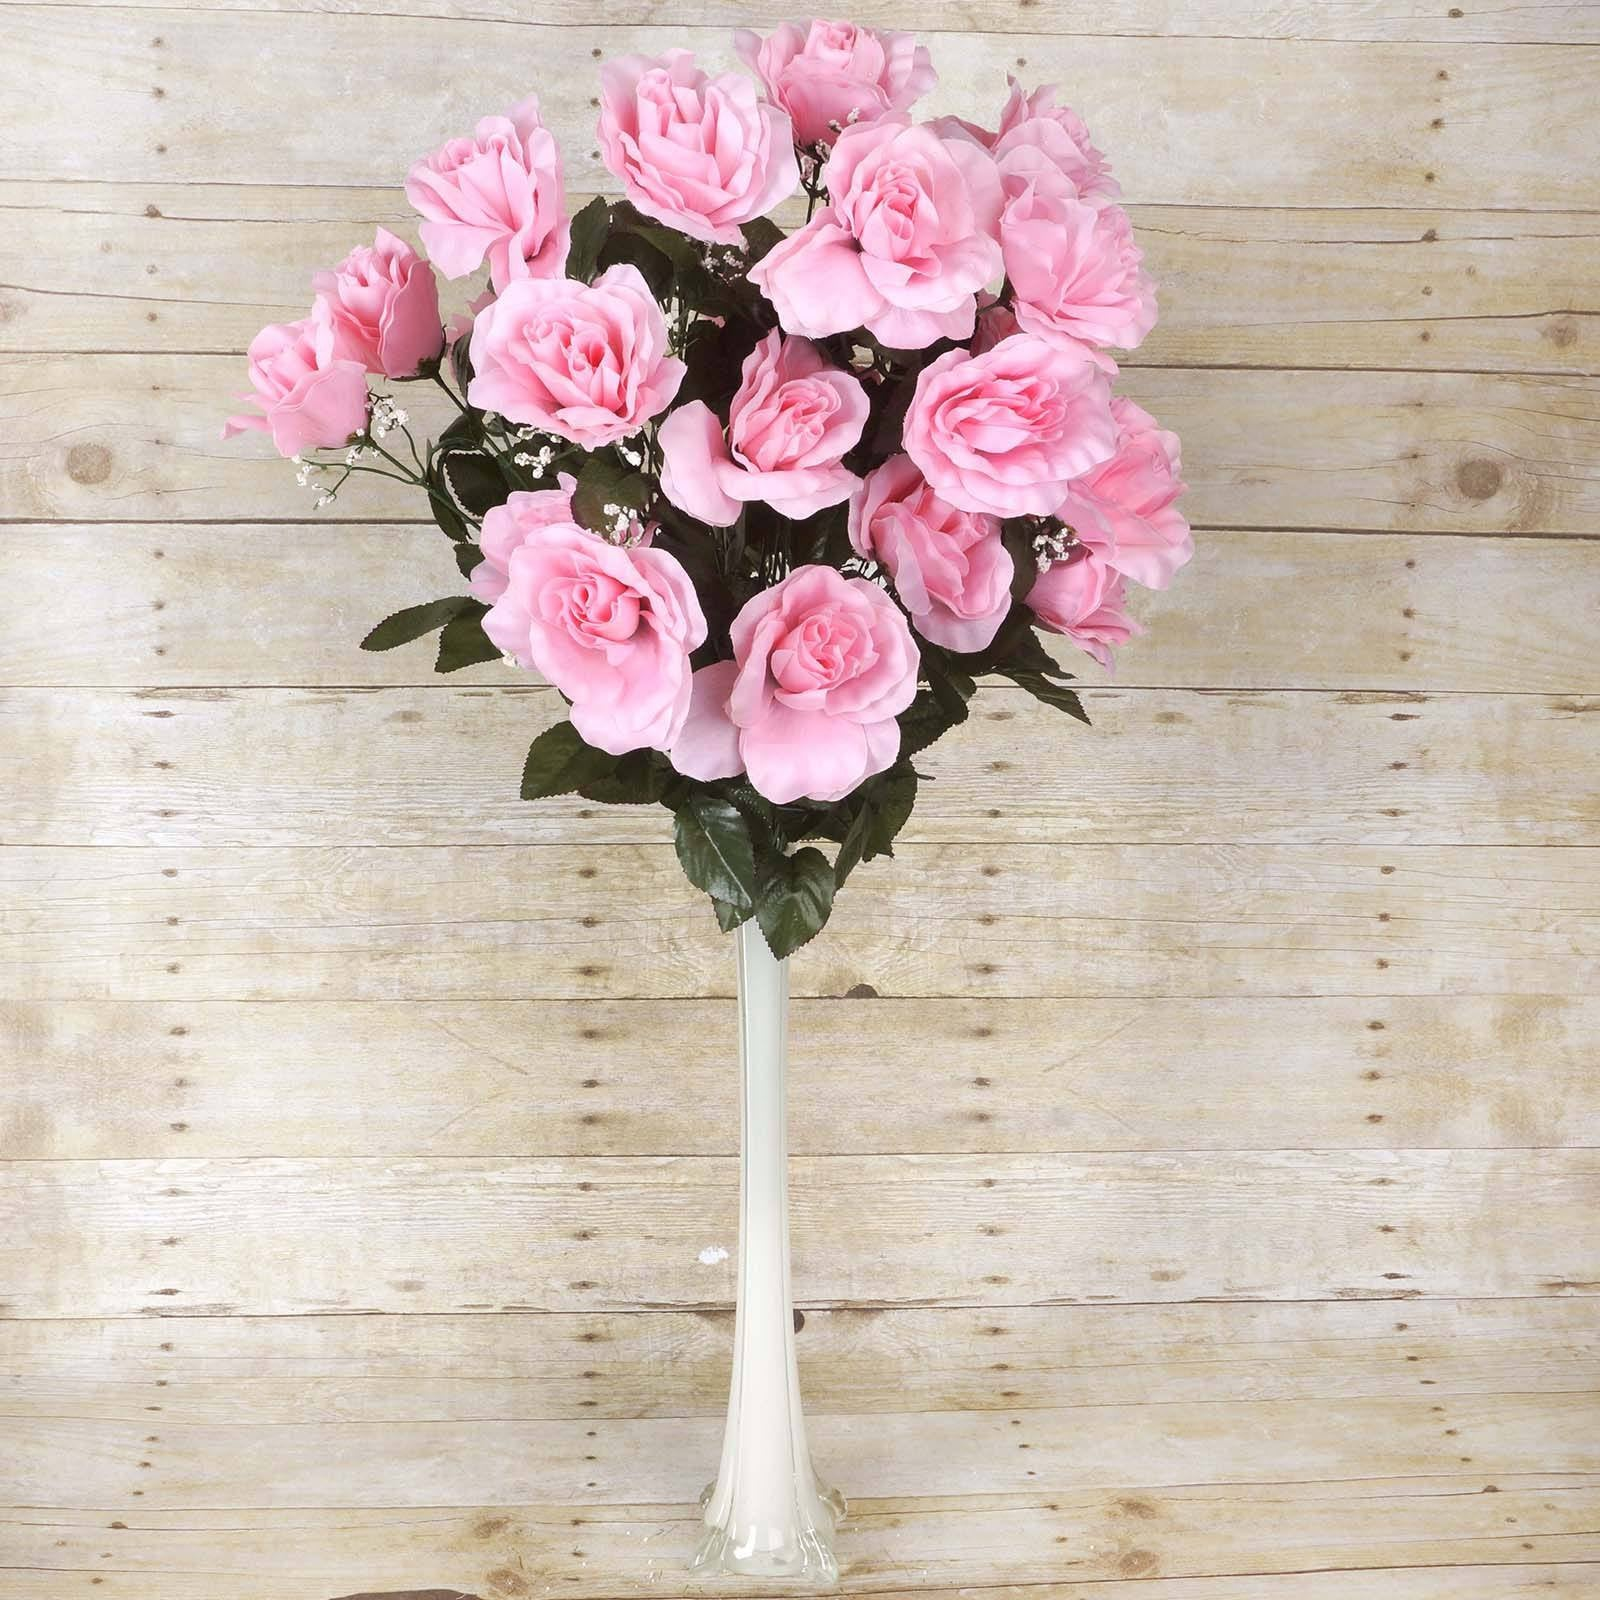 96 Artificial Pink Giant Silk Open Roses Wedding Bridal Bouquet ...